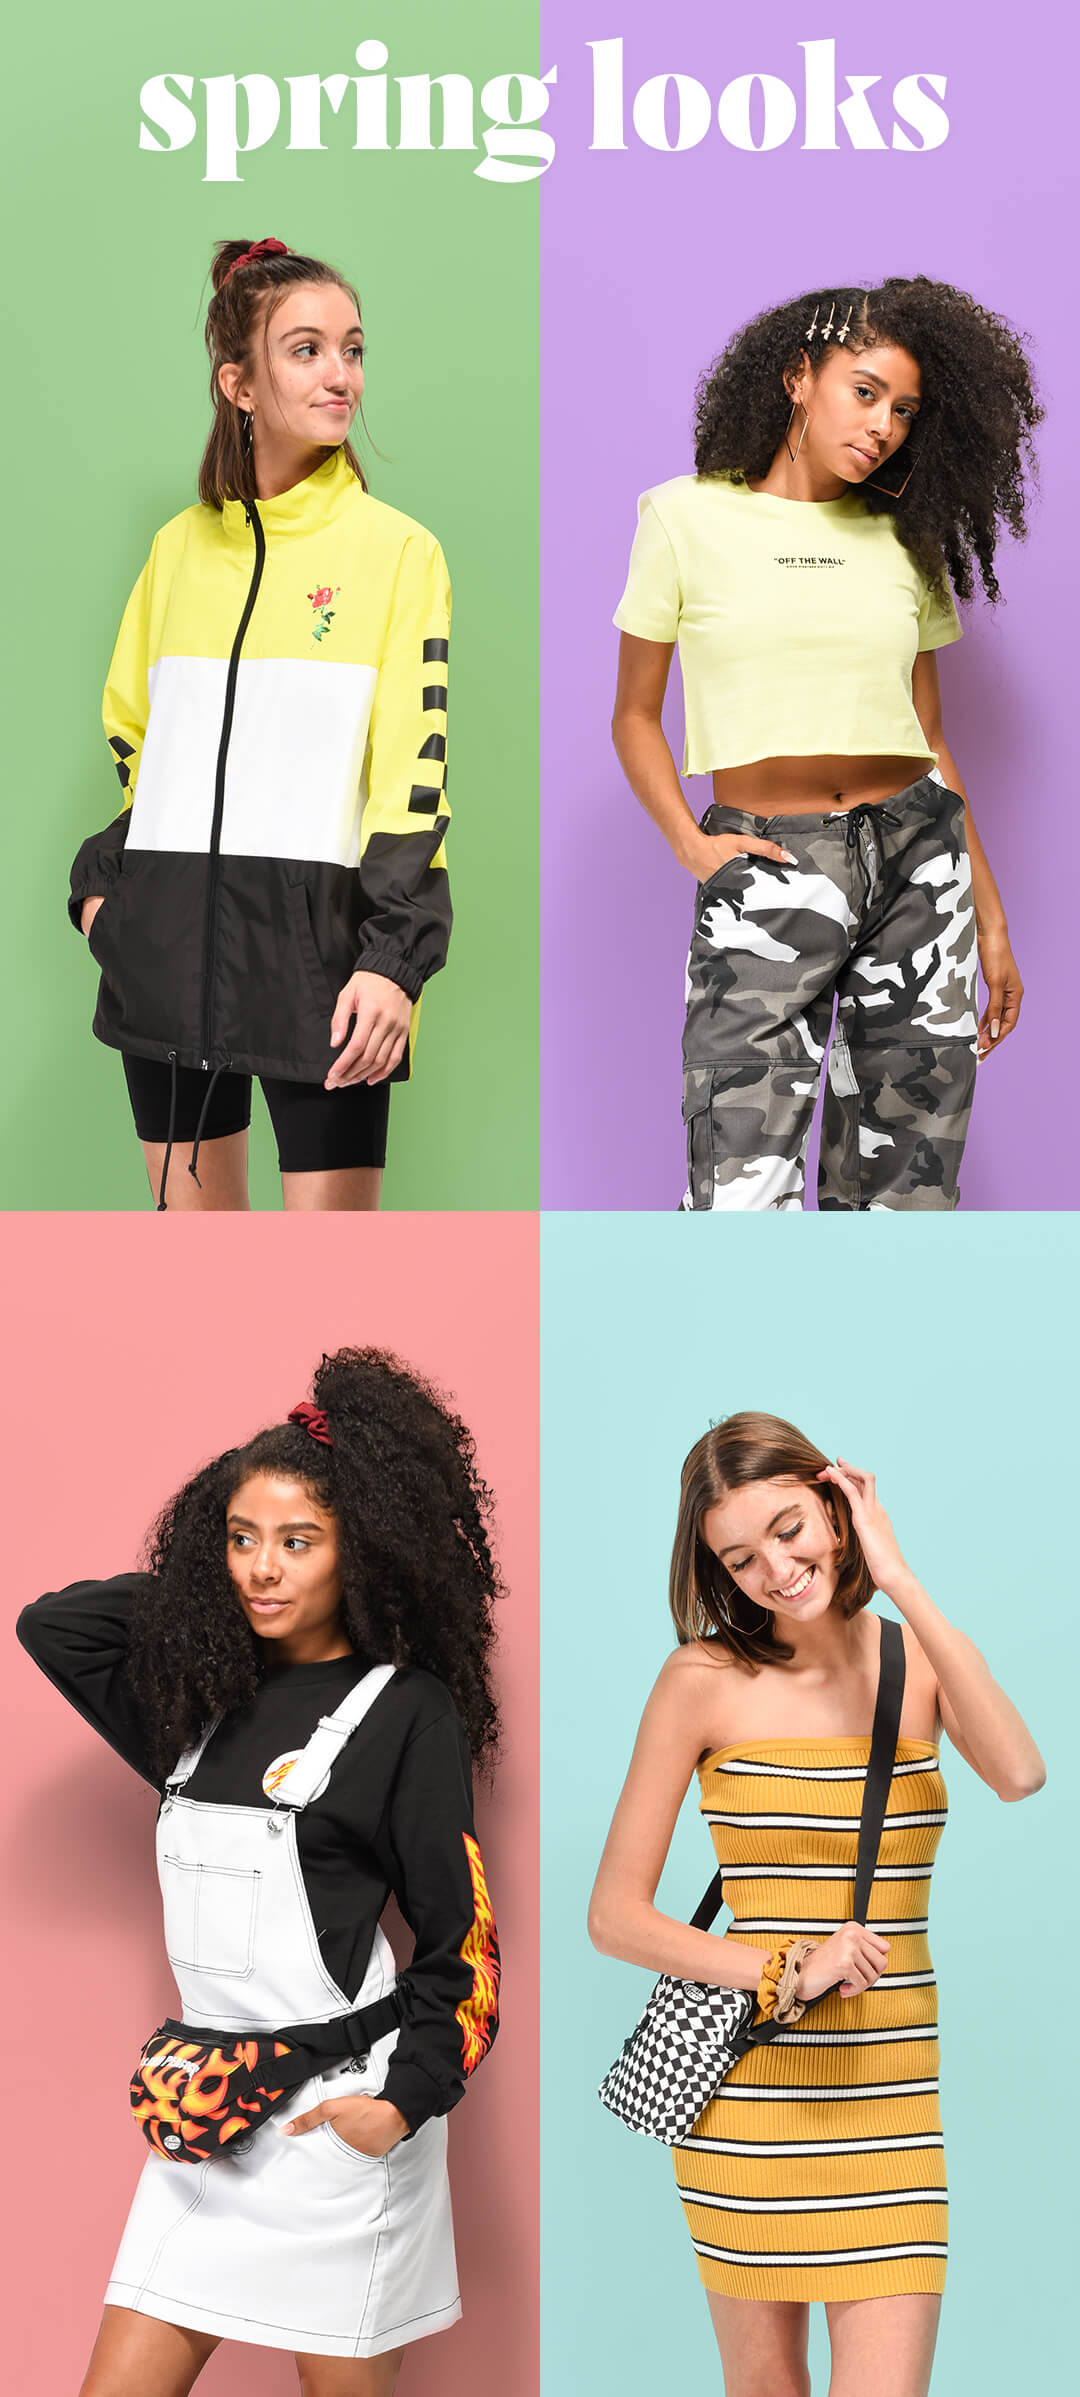 WOMEN'S SPRING STYLES & TOP SELECTED BRANDS FOR SPRING - SHOP LOOKS